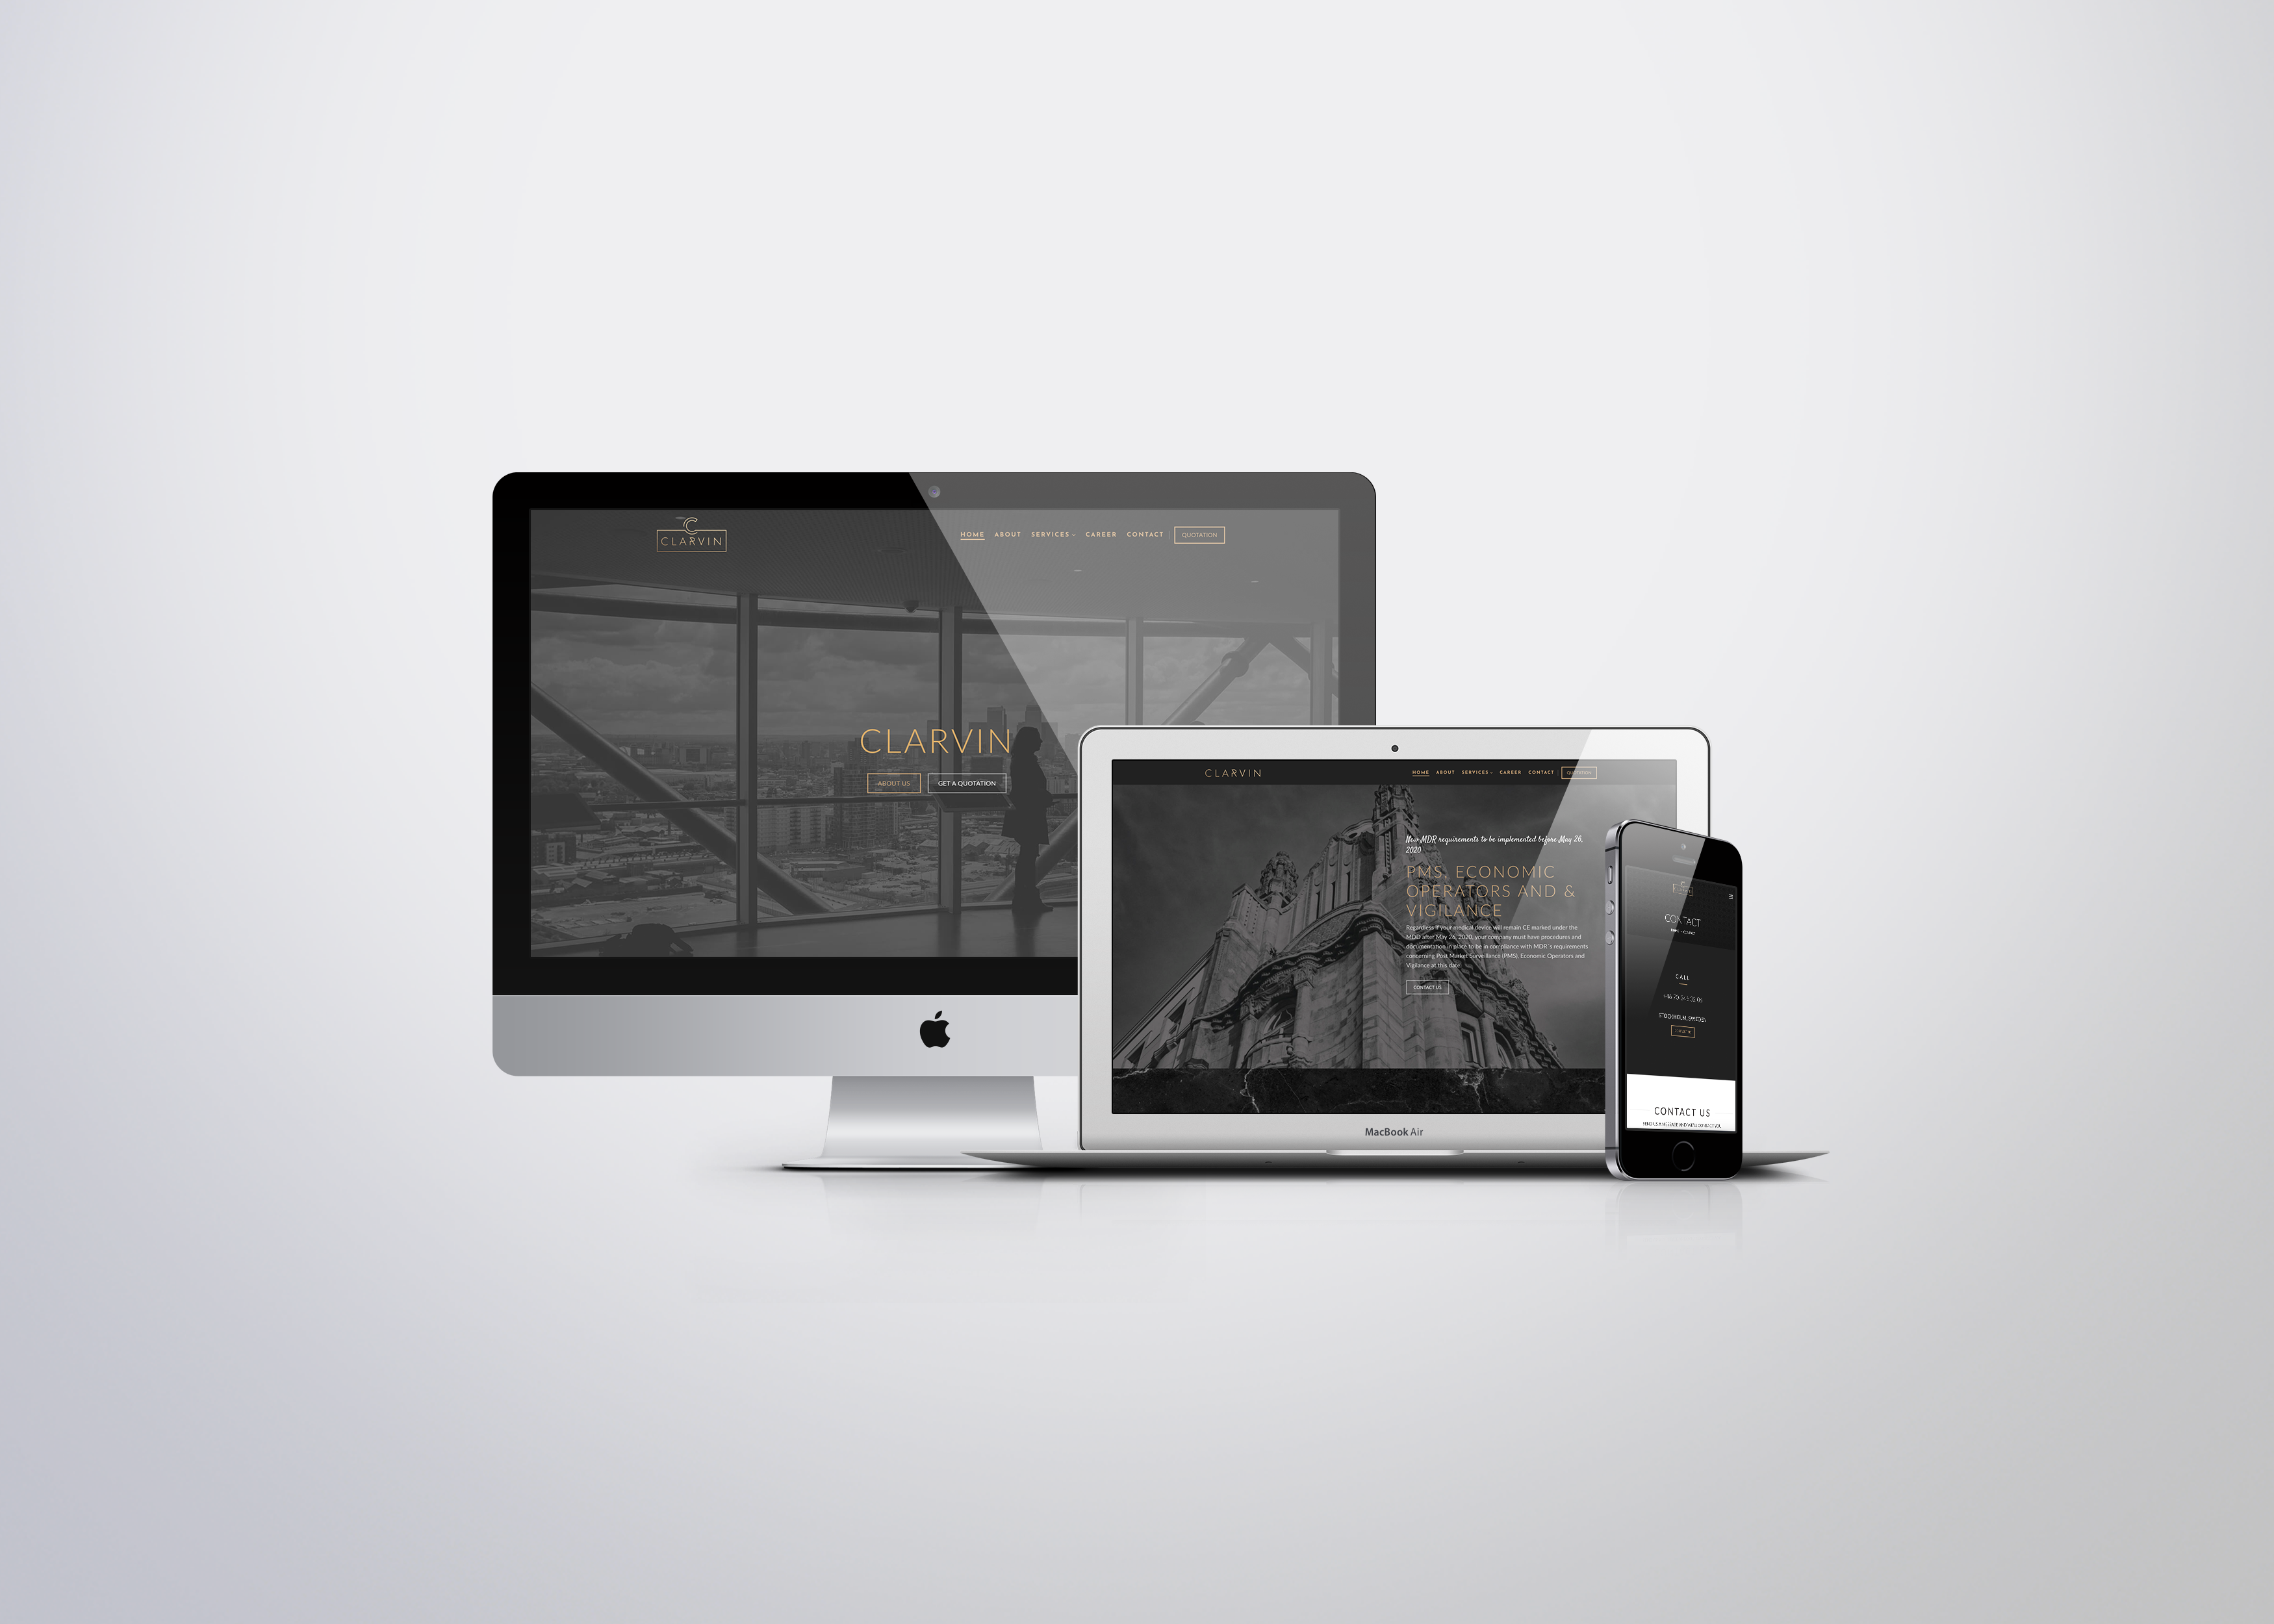 CLARVIN iMac & mackbook - Mj Design Center